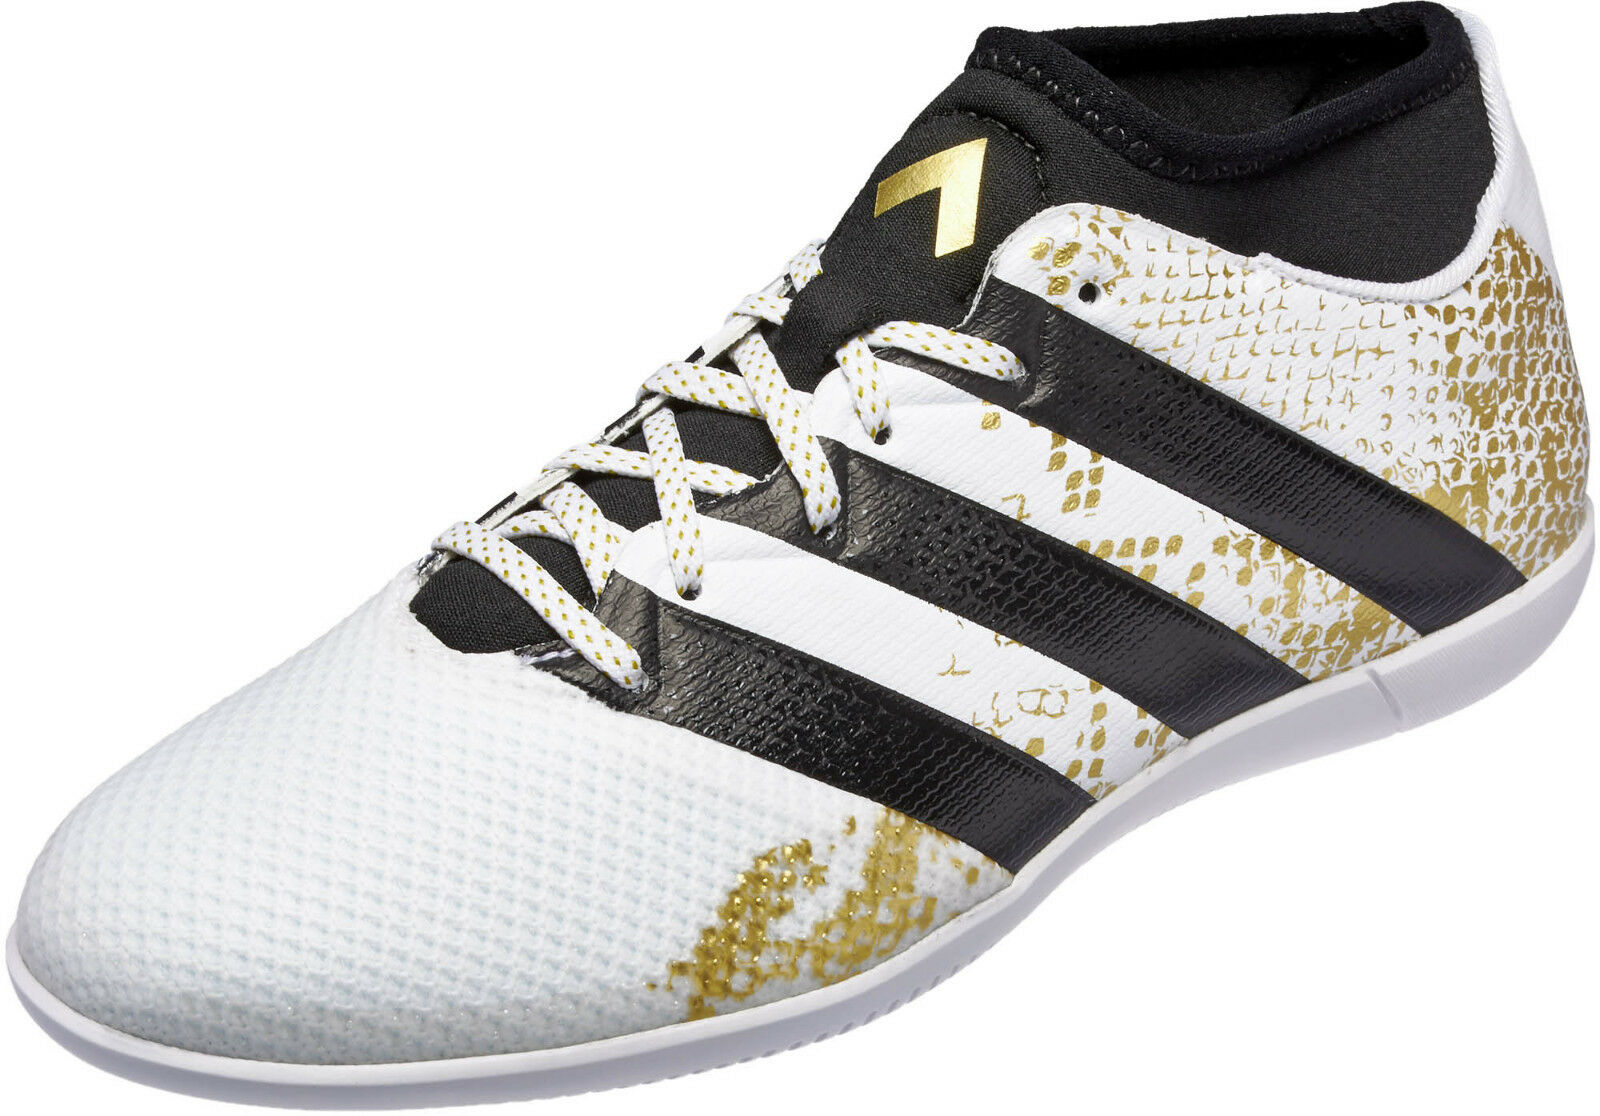 ADIDAS ACE 16.3 PRIMEMESH IN WHITE SOCCER SNEAKERS MEN SHOES WHITE IN AQ3422 SIZE 11 NEW 9e2c04